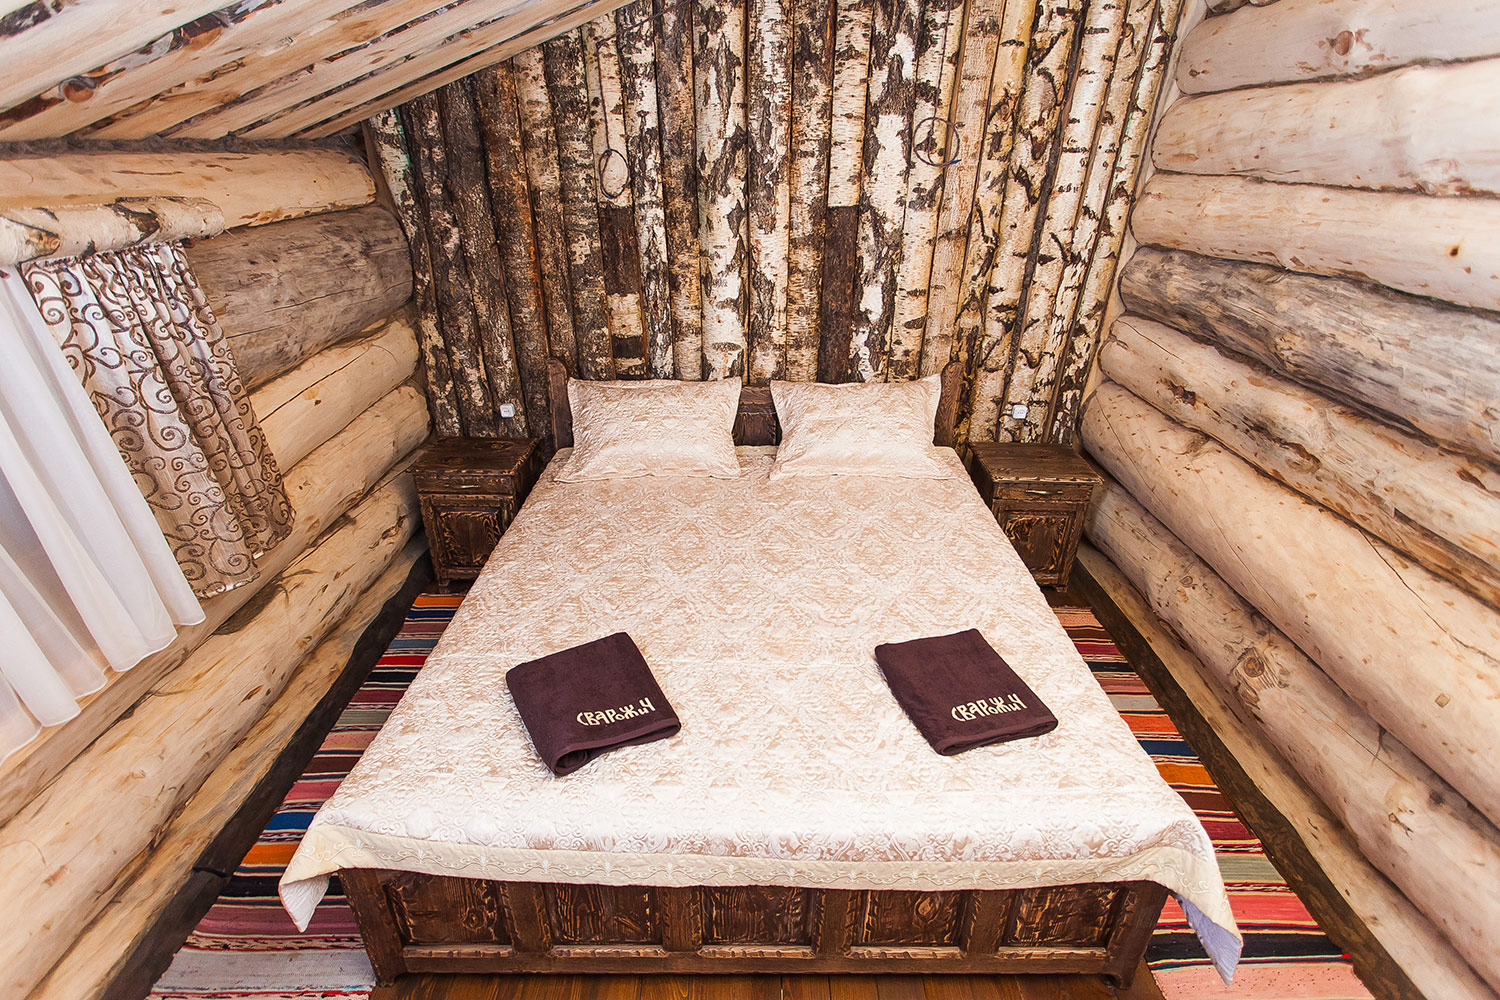 The Svarozhych bathhouse. A natural wooden bedroom. A blockhouse. The logo embroidery on towels.